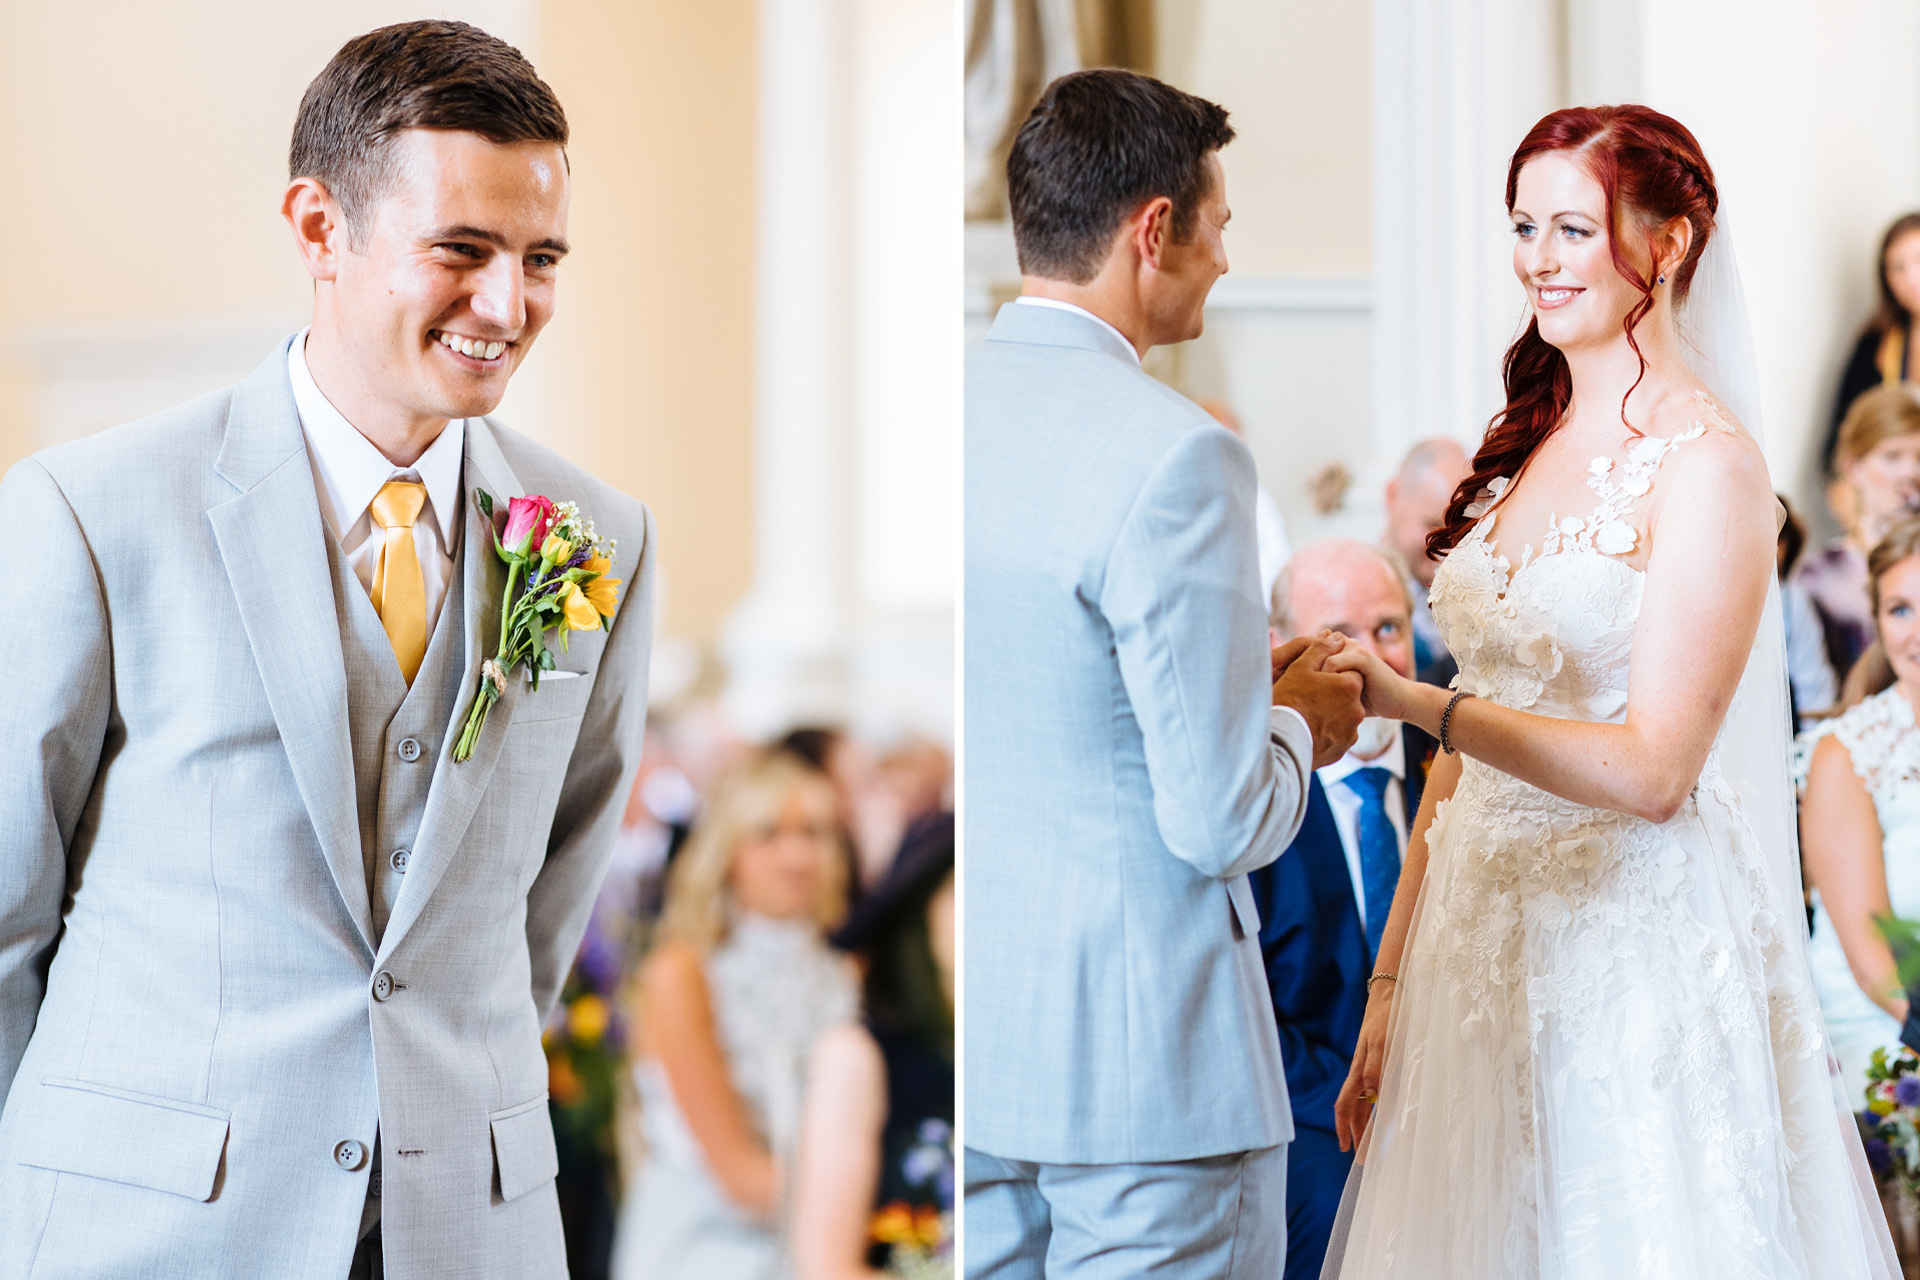 bride and groom exchanging rings in wedding ceremony at syon park